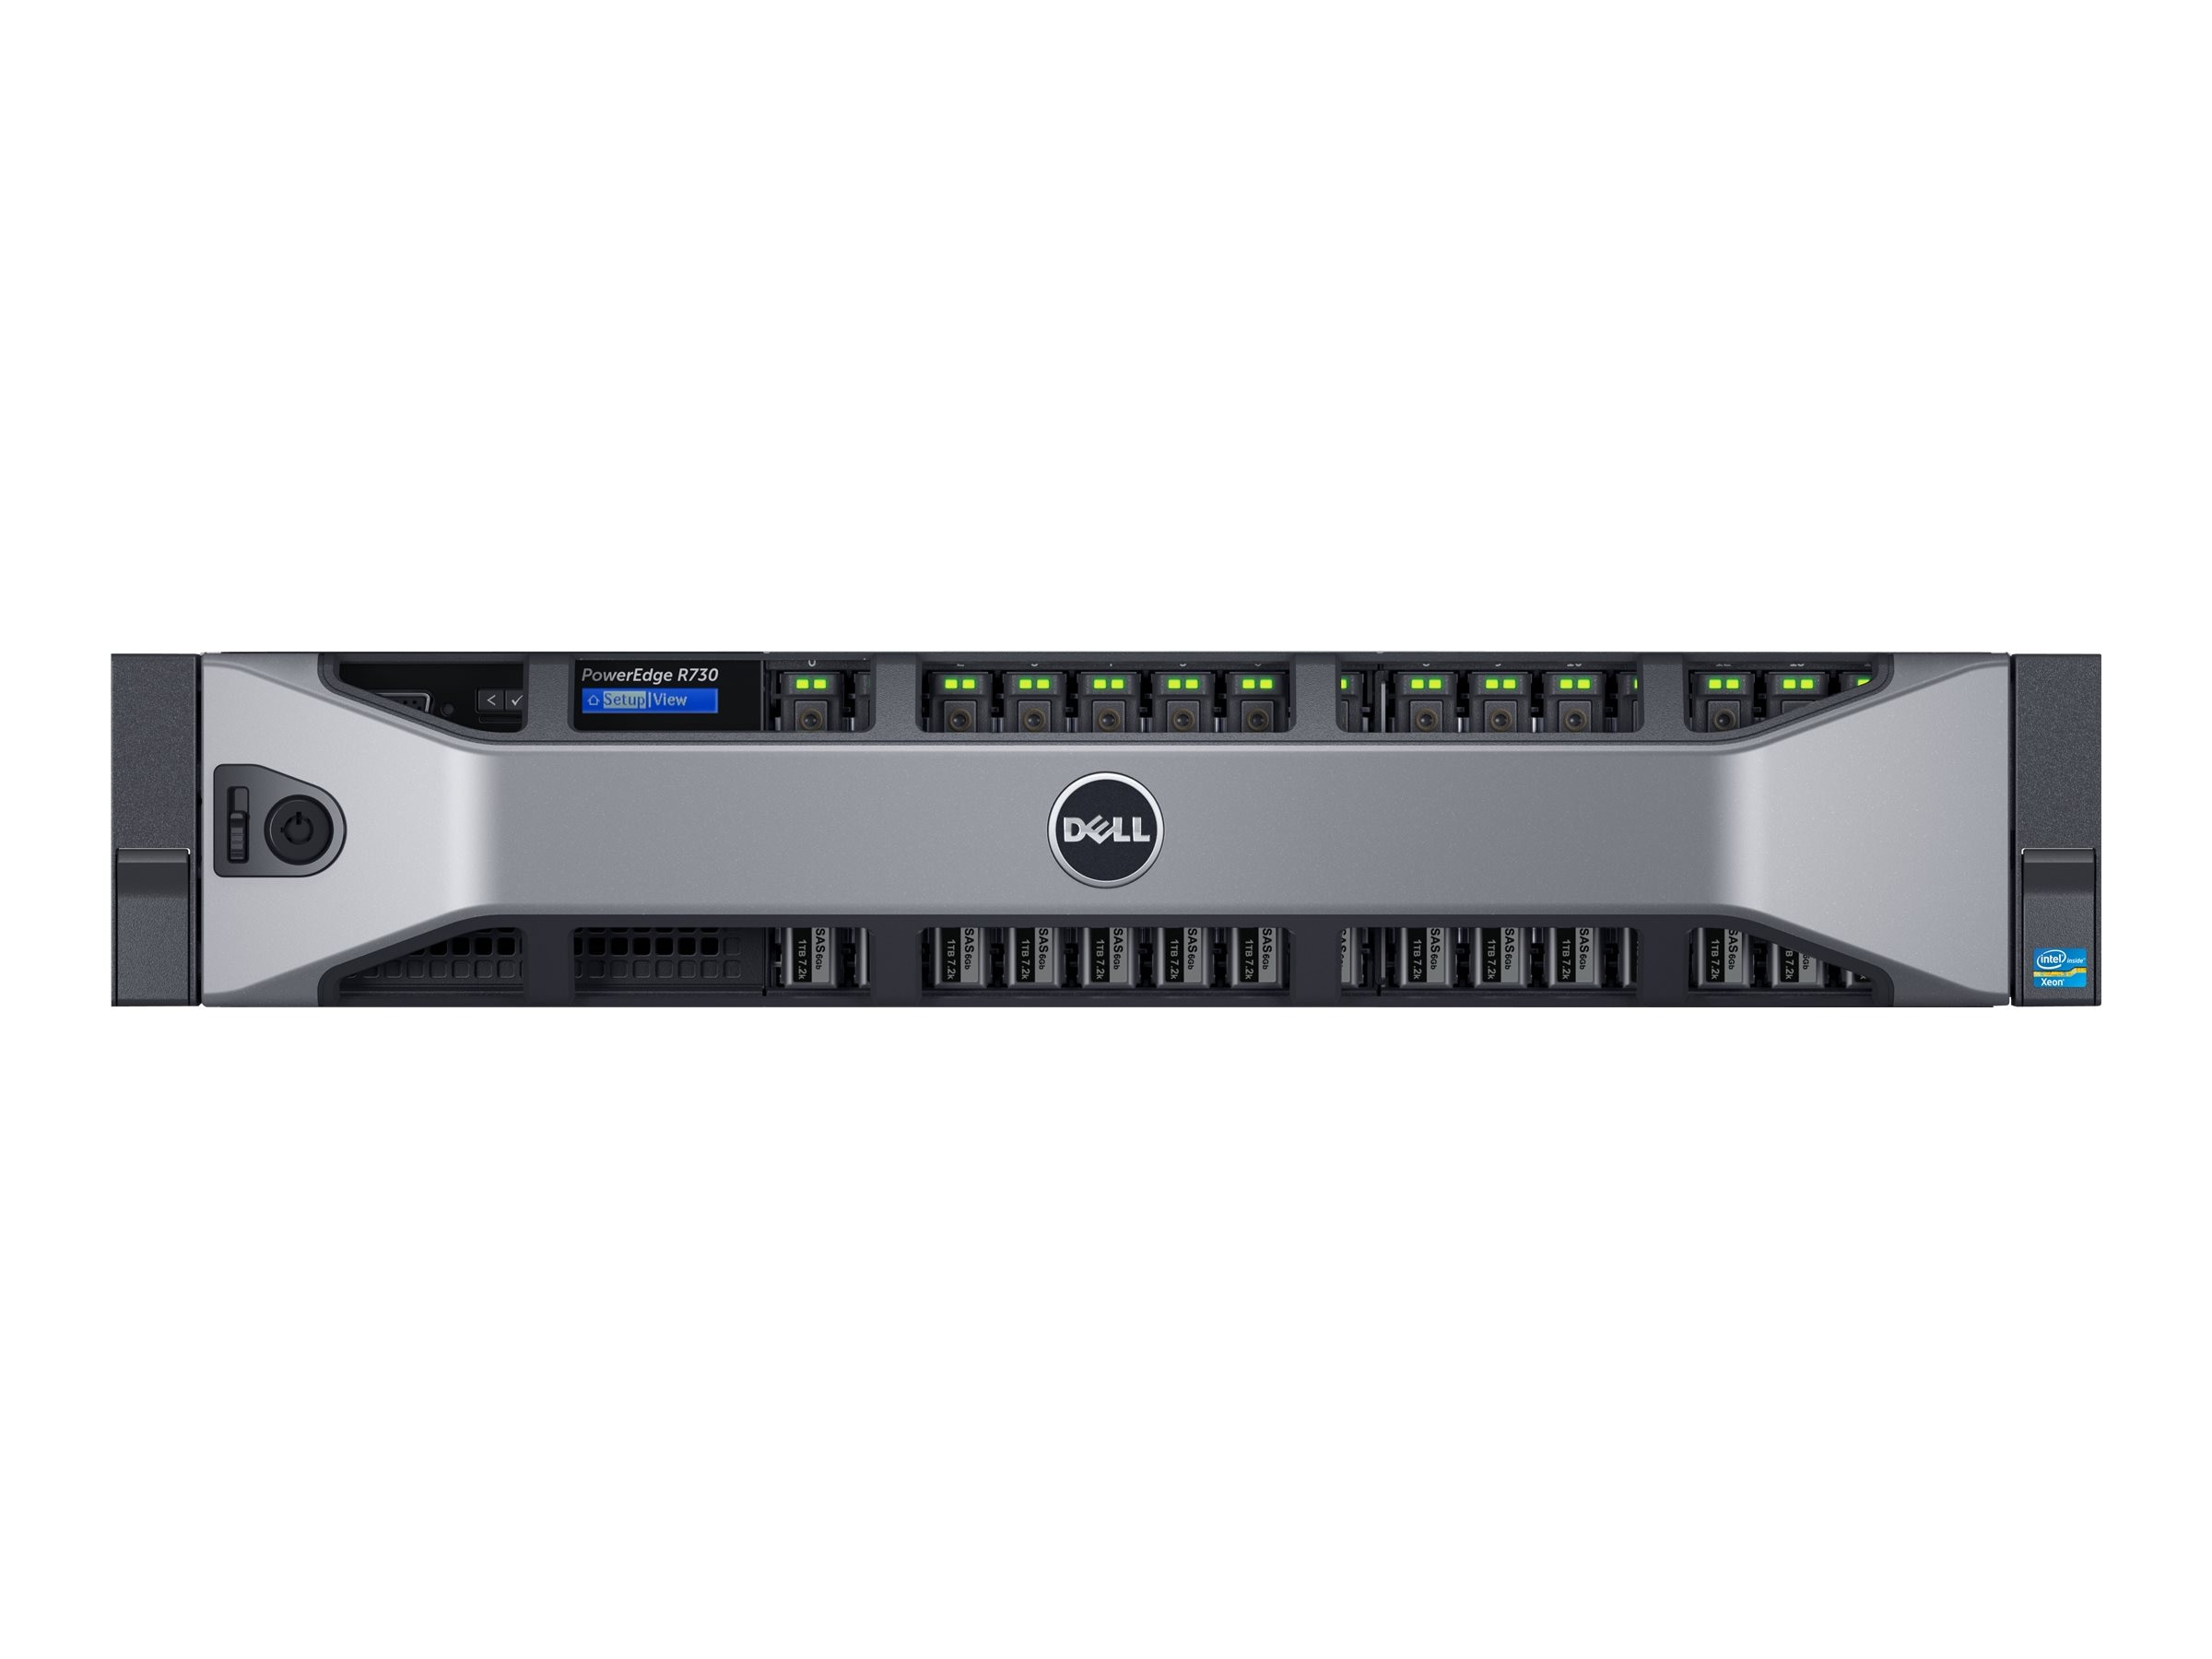 Dell PowerEdge R730 Intel 2.1GHz Xeon, 463-7694